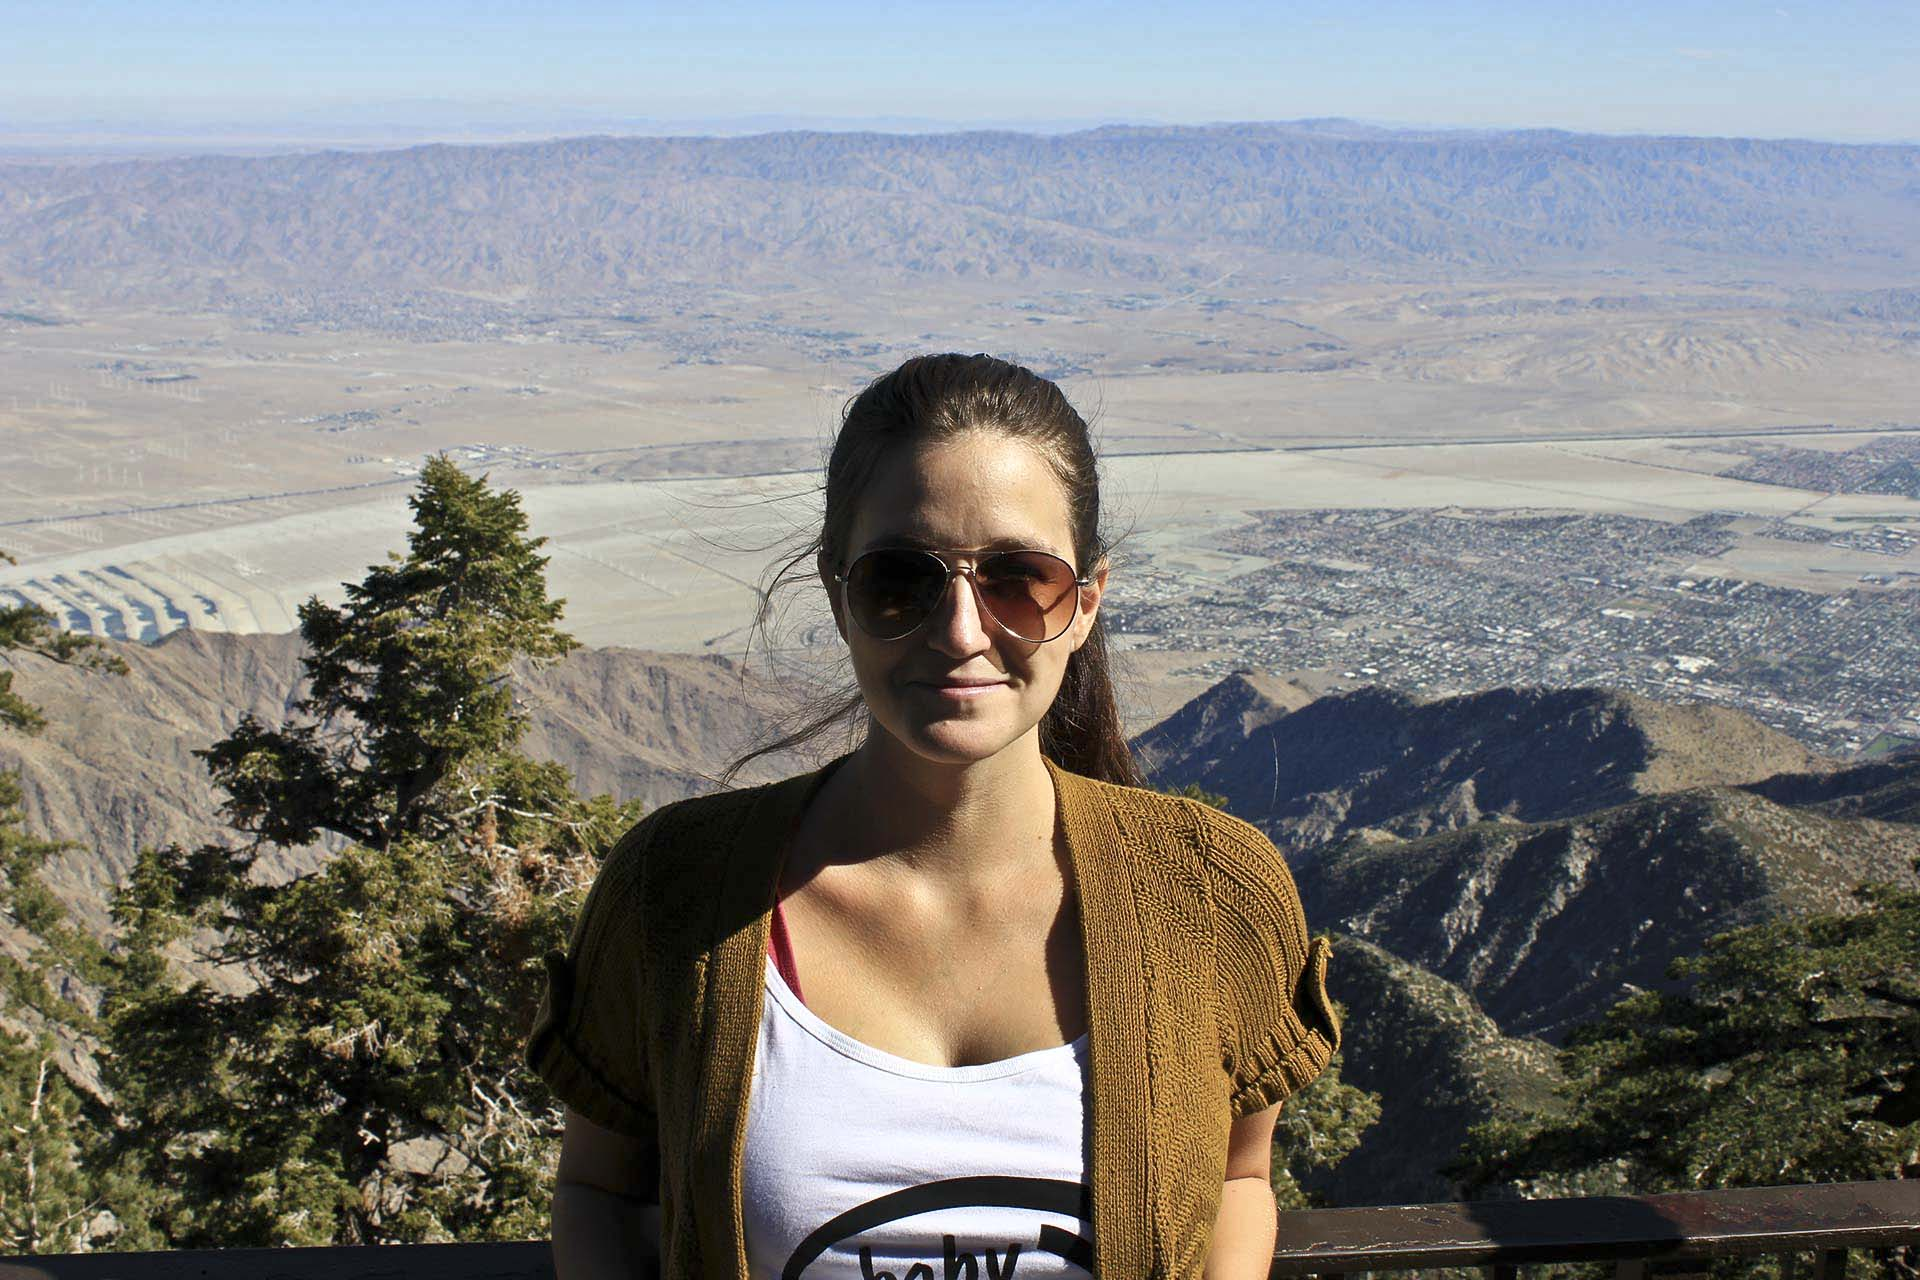 Palm Springs Aerial Tram The Best View Of The Desert